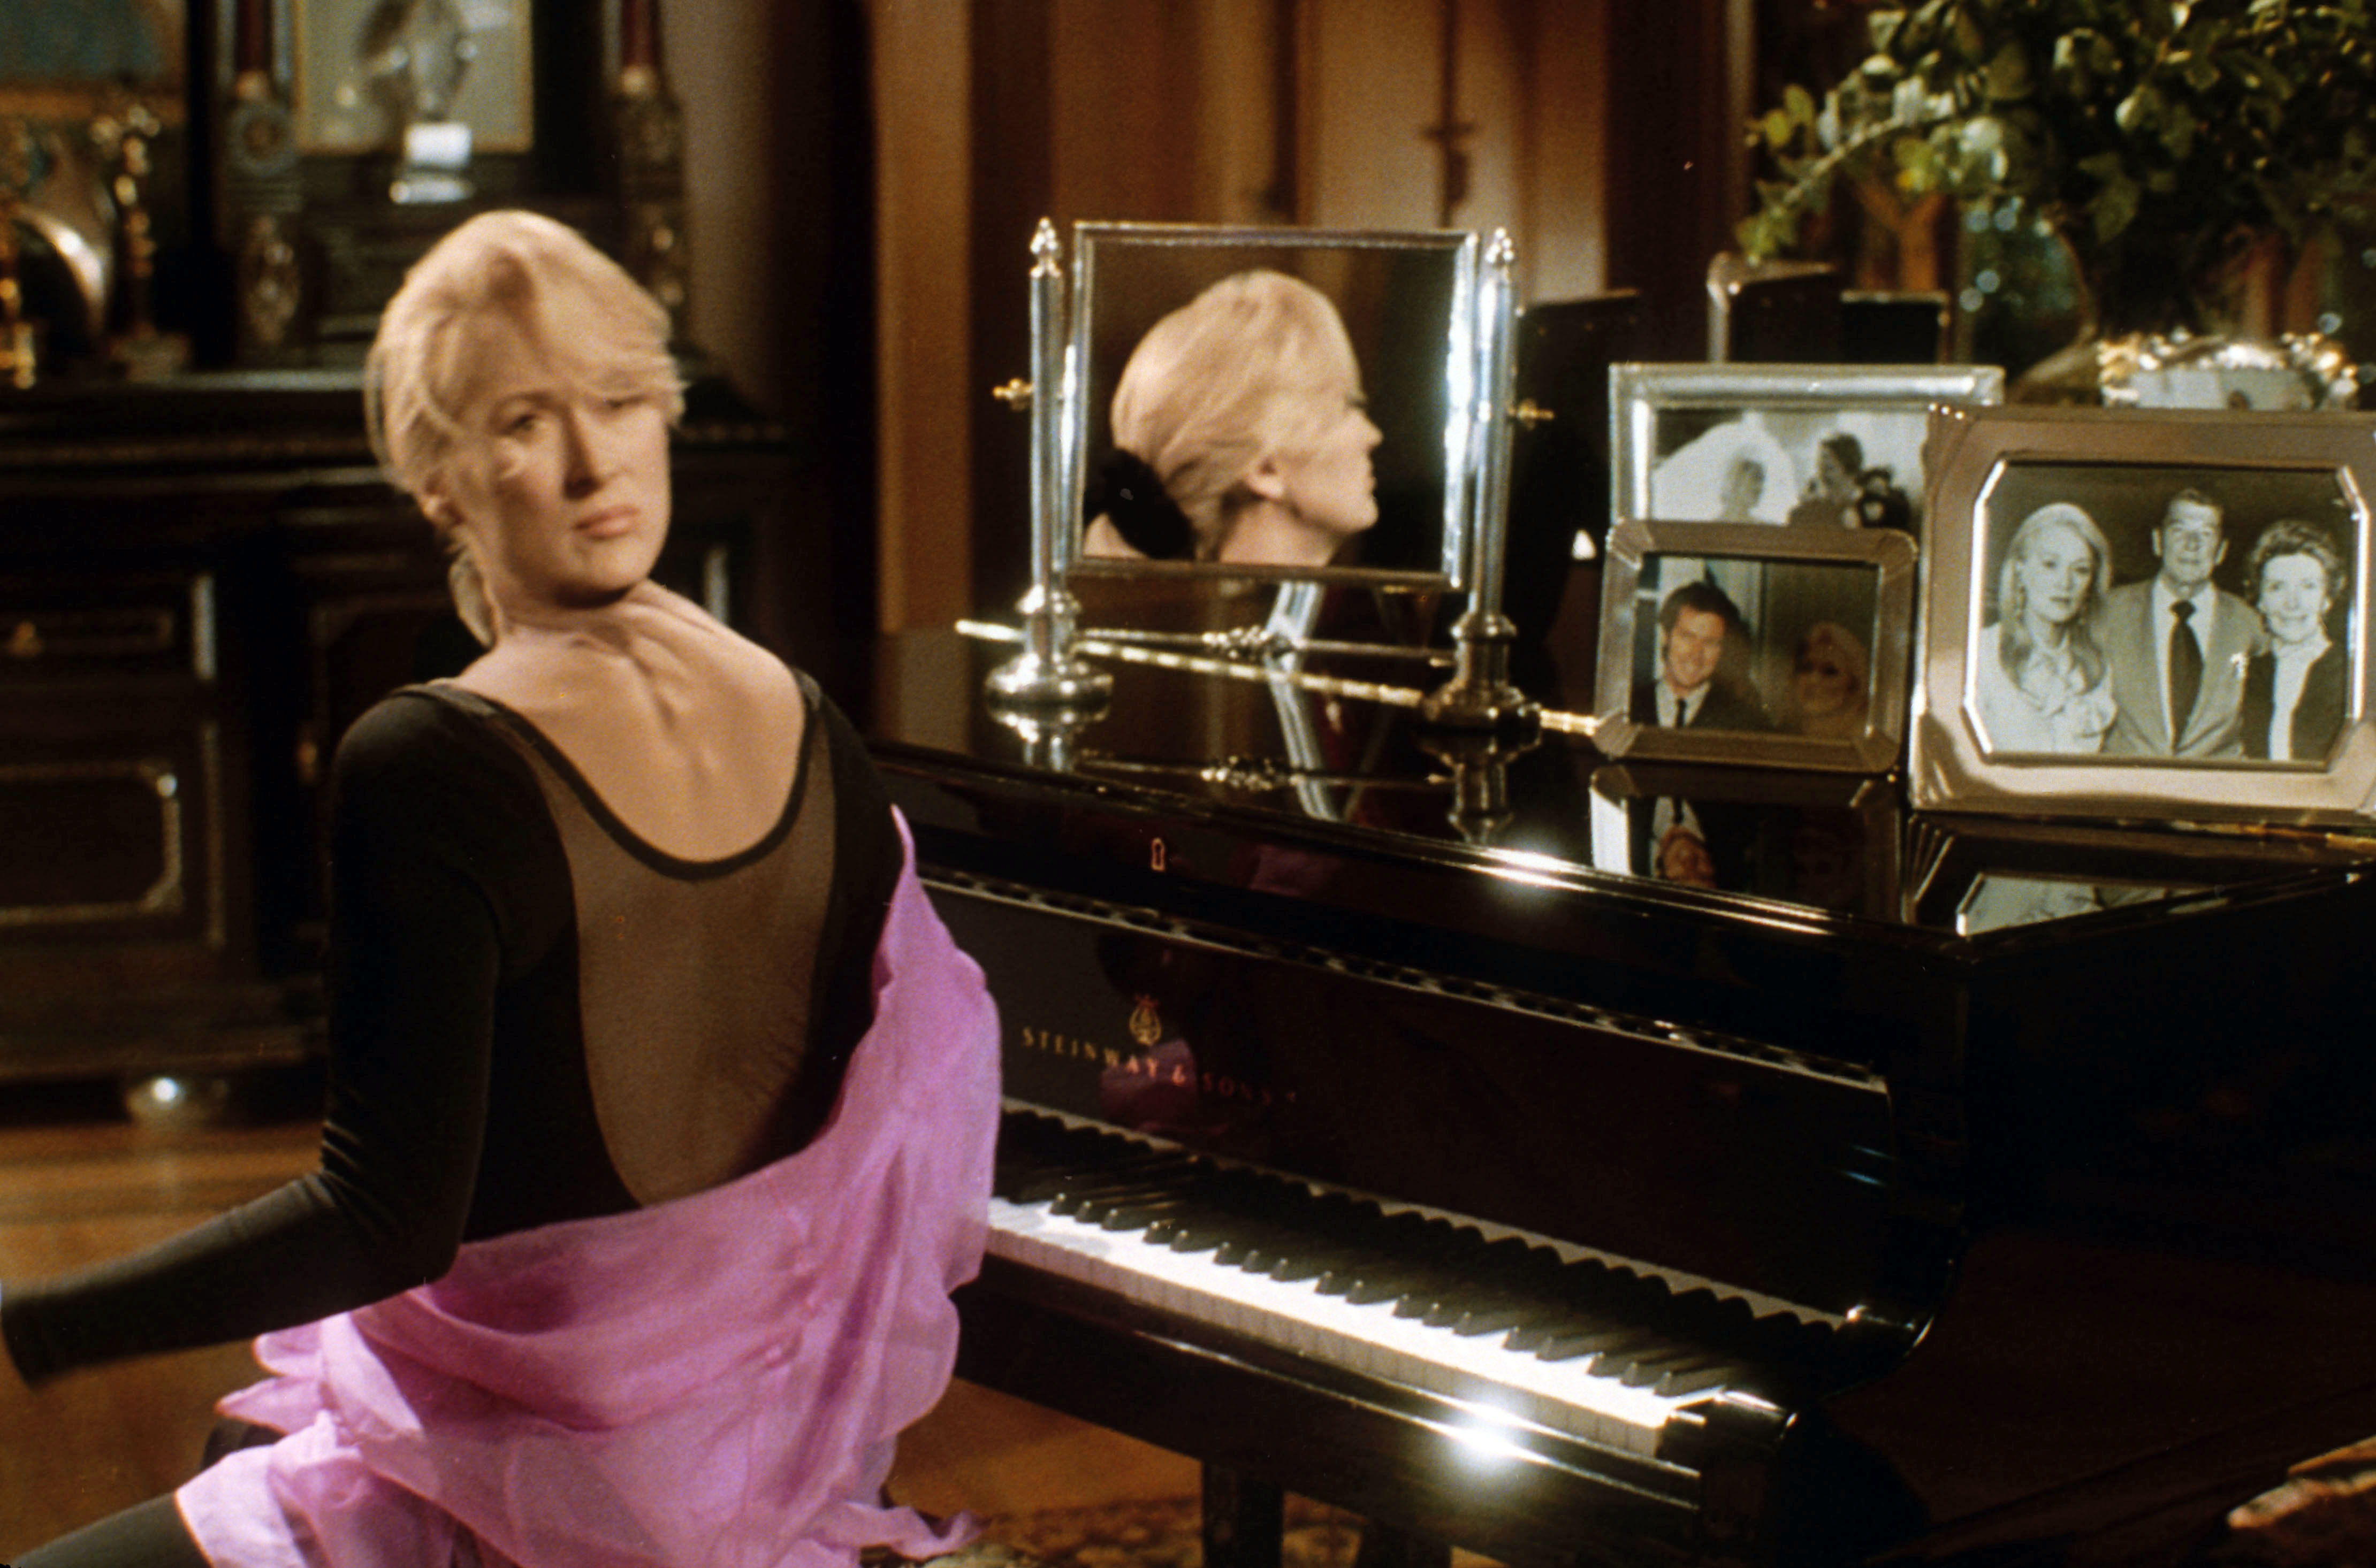 No Merchandising. Editorial Use Only. No Book Cover Usage.Mandatory Credit: Photo by Universal/Kobal/REX/Shutterstock (5882059a) Meryl Streep Death Becomes Her - 1992 Director: Robert Zemeckis Universal USA Scene Still Comedy La Mort vous va si bien